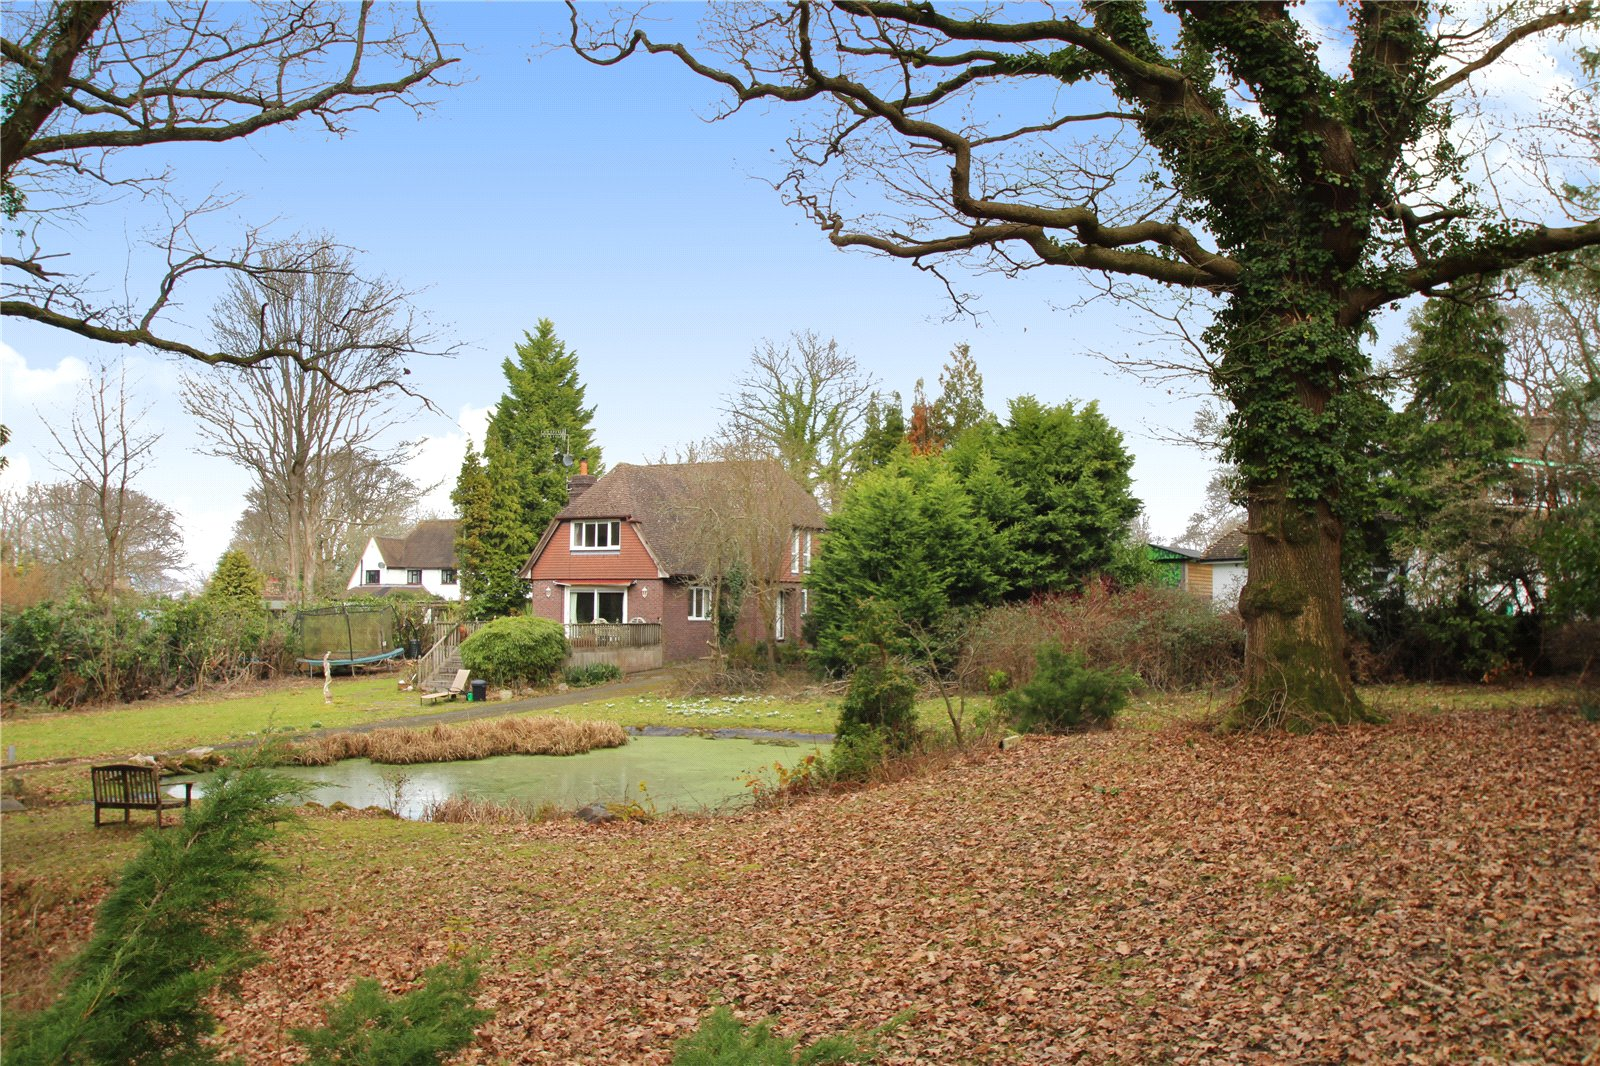 Uckfield Lane, Hever - £1,100,000